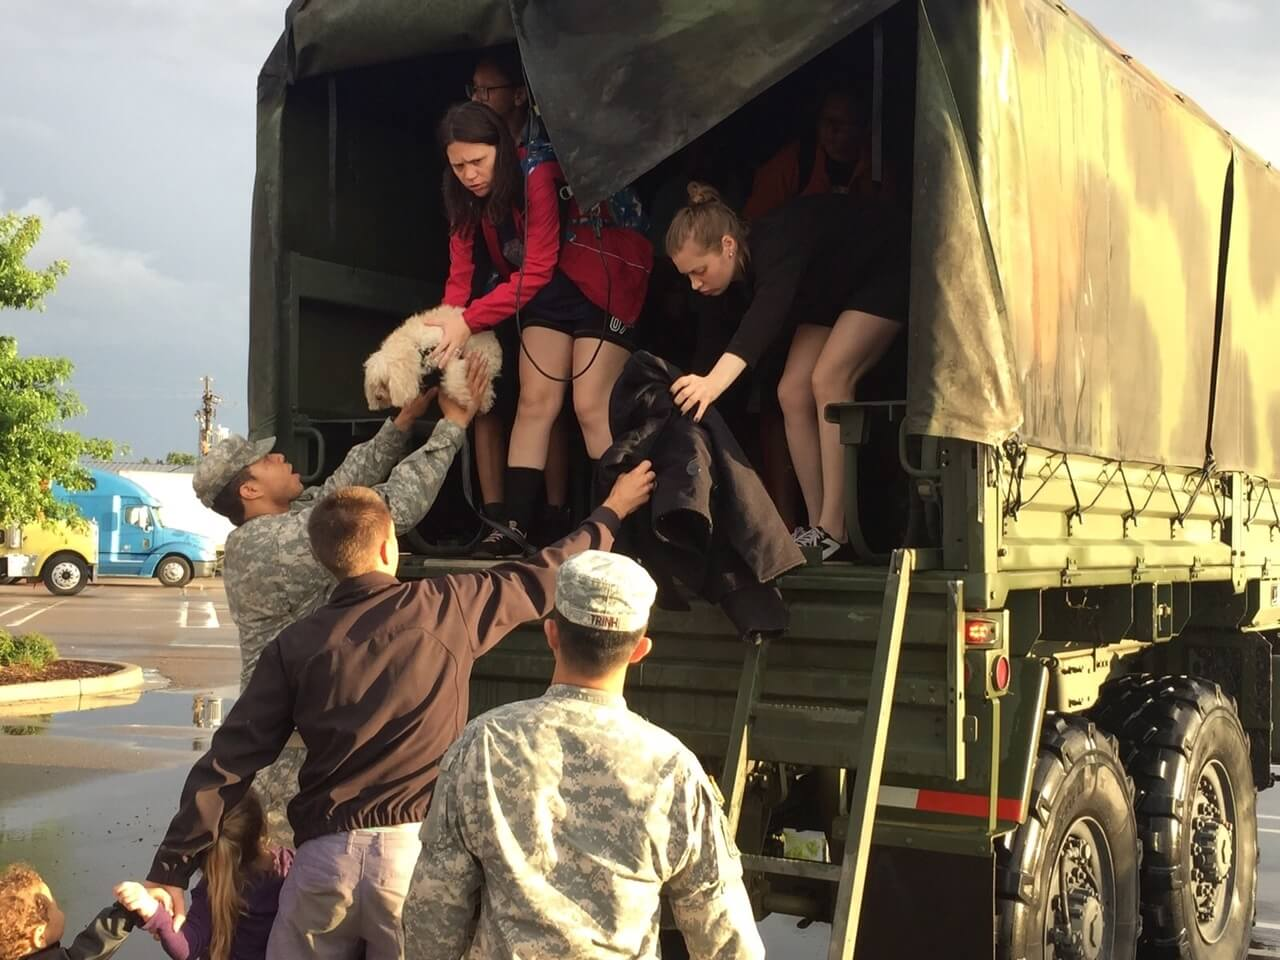 Soldiers with the Louisiana National Guard help citizens out of the back of a high-water vehicle on Airline Road in Baton Rouge, Louisiana after being rescued on Millerville, Aug. 14, 2016. The LANG has rescued more than 3,400 people and 400 pets during search and rescue operations since operations began 48 hours ago. (U.S. Army National Guard by 1st Lt. Gomez)